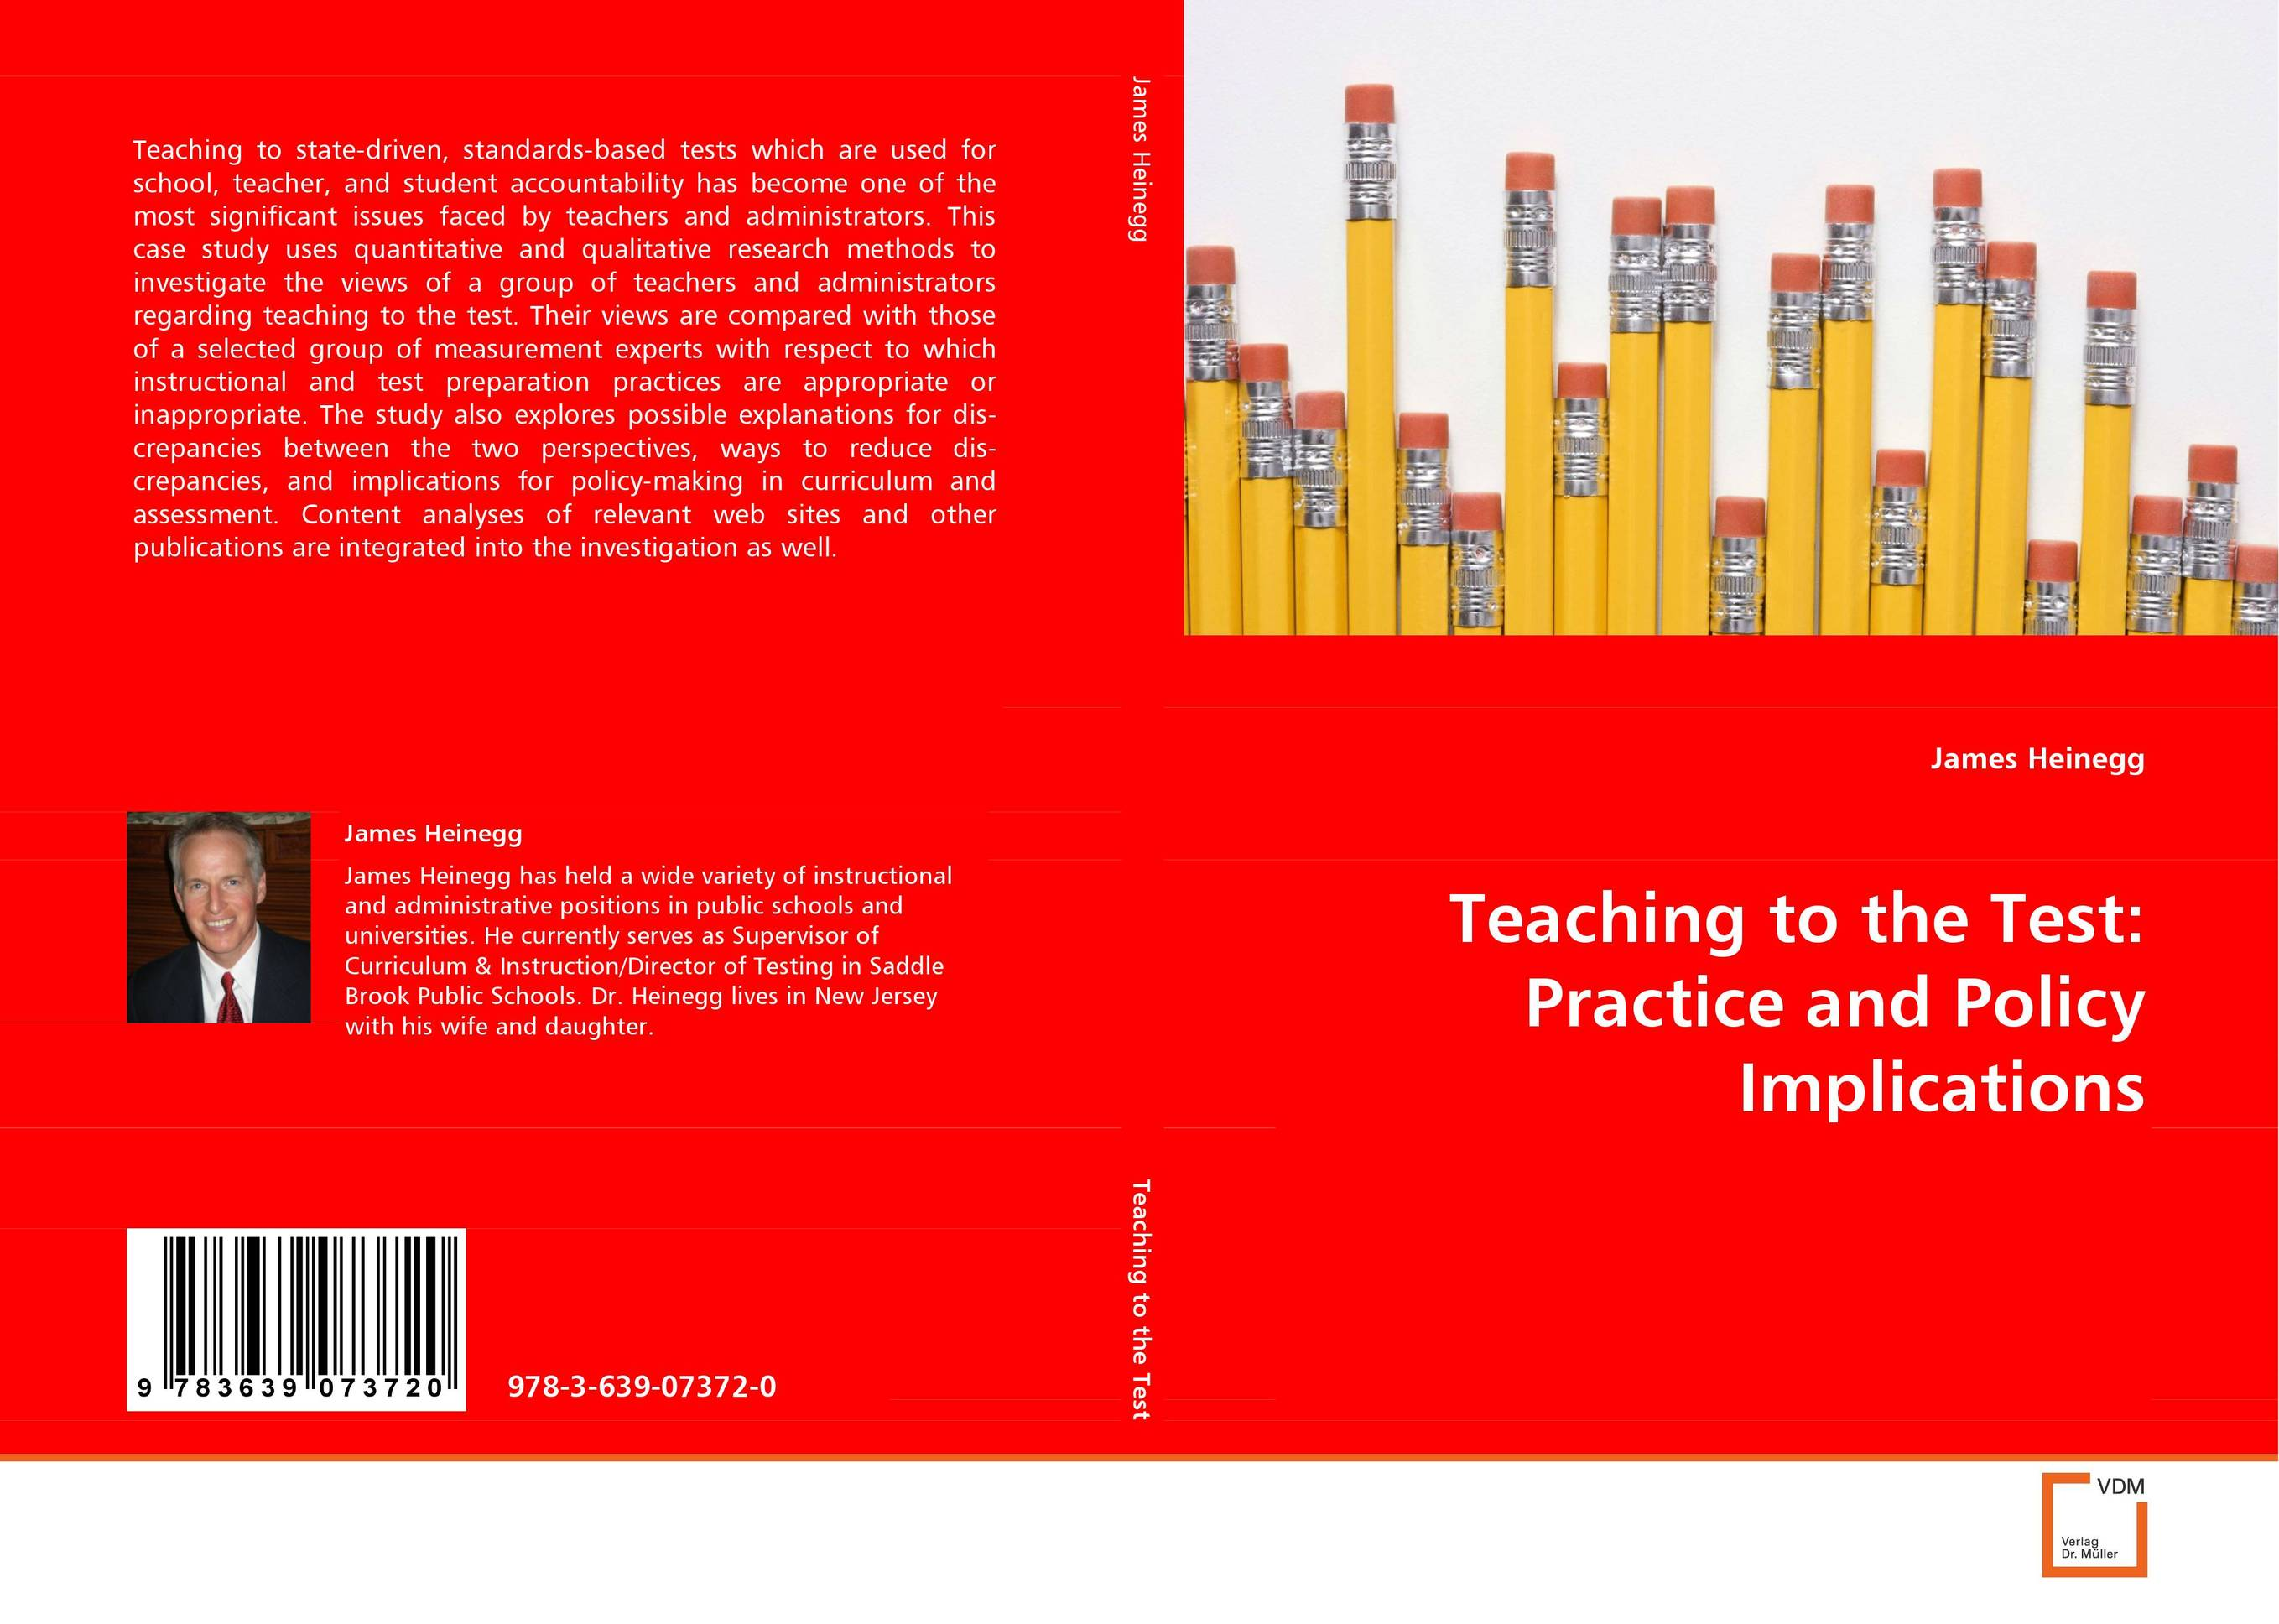 Teaching to the Test: Practice and Policy Implications driven to distraction